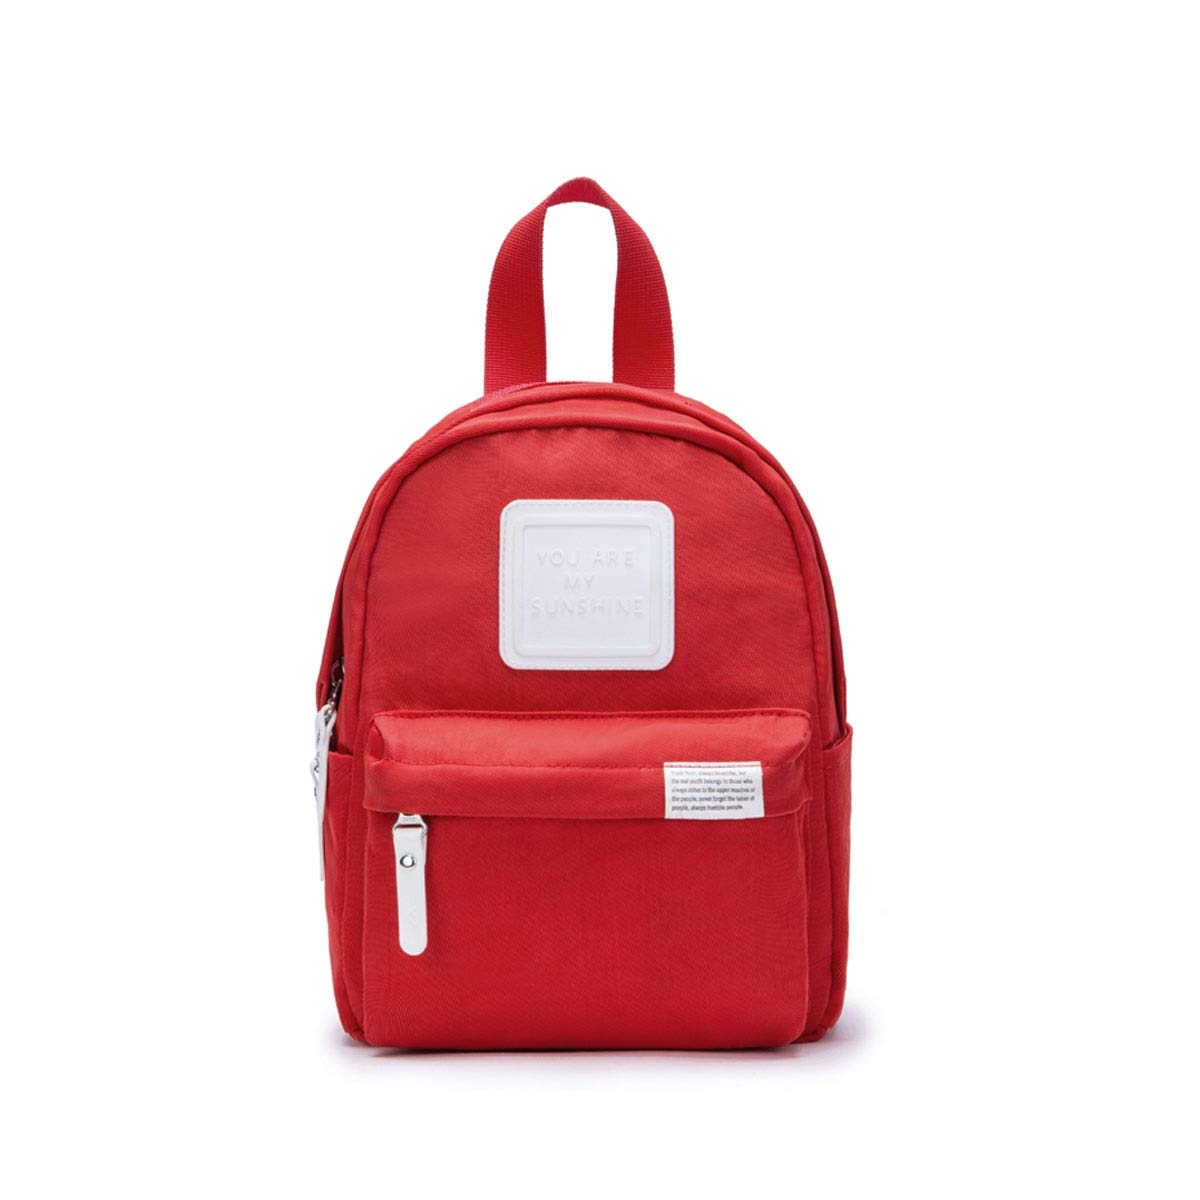 TONGBOSHI Backpack Female College Student Leisure Travel Bag, Small Fresh Backpack Campus Bag Male Fashion Trend (Color : Red)